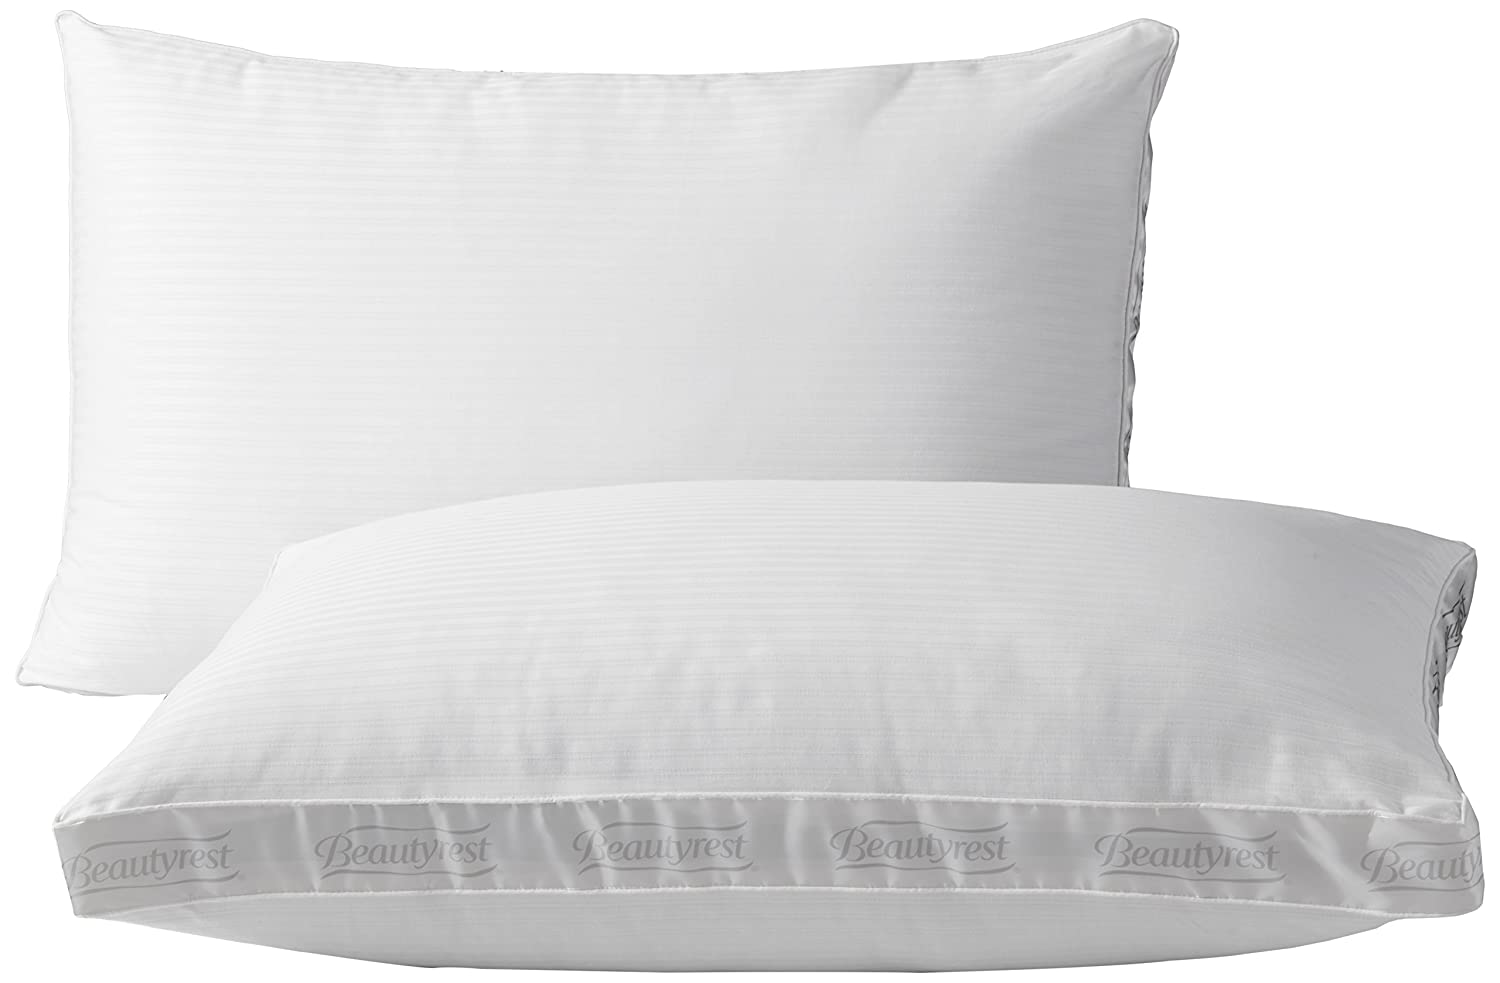 Beautyrest Extra Firm Pillow for Back & Side Sleeper, Two Pack, Standard